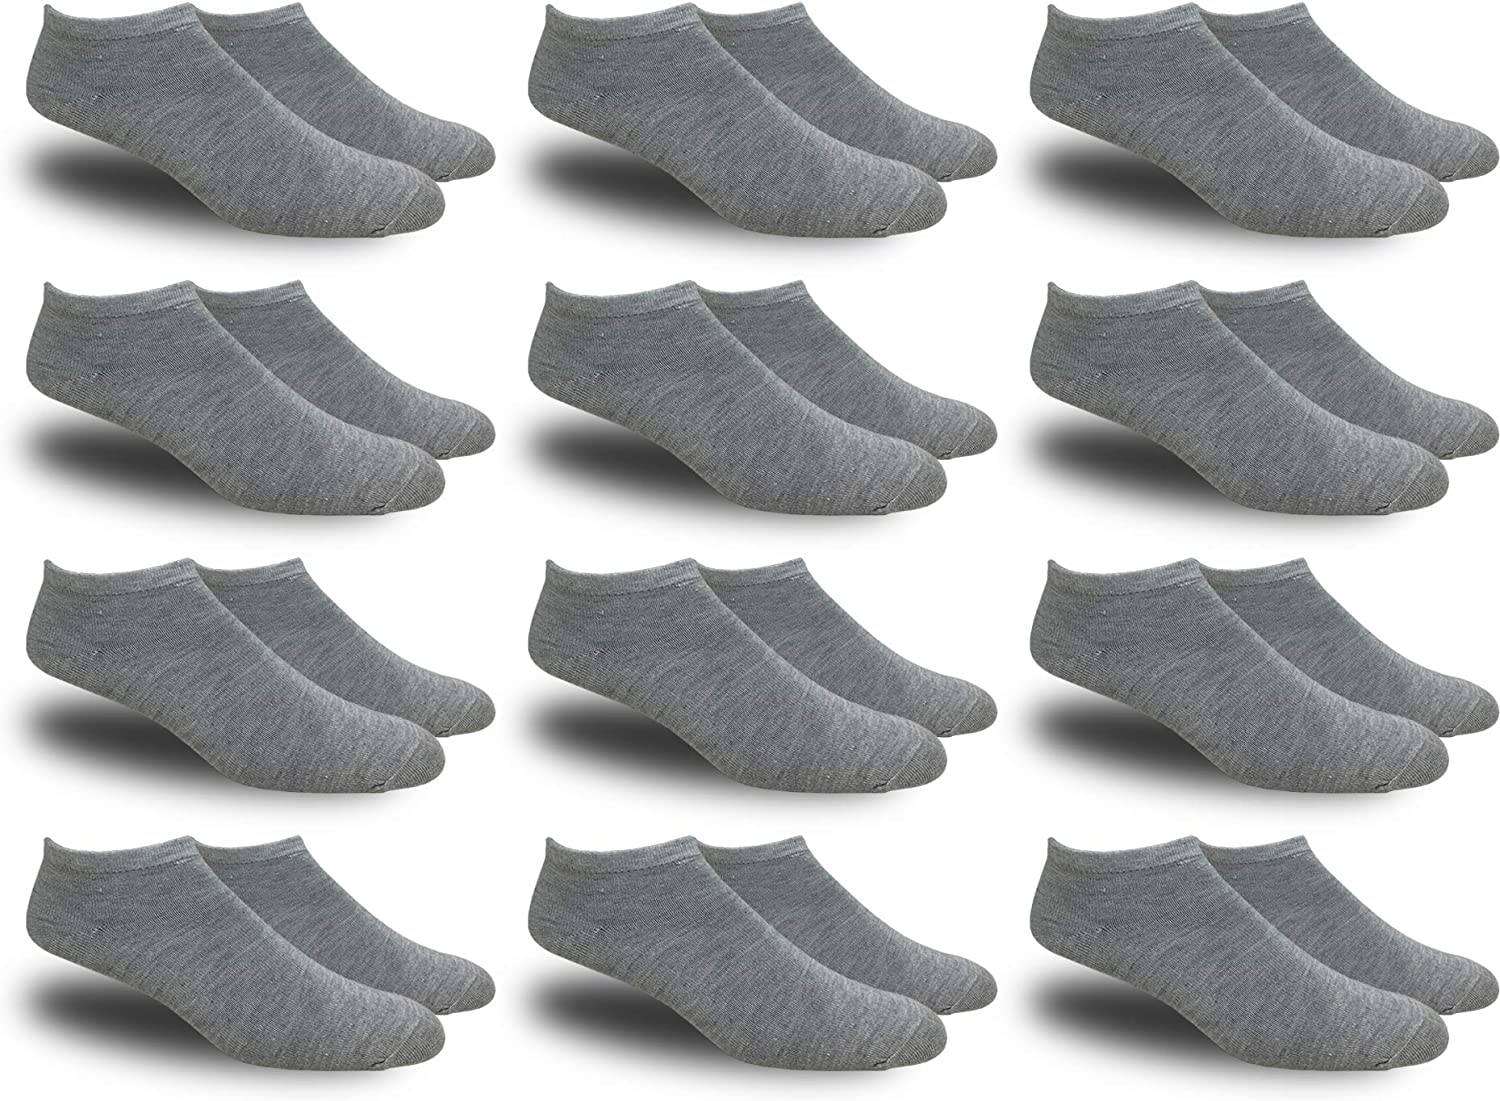 Women's White Thin and Lightweight Low-cut Ankle Socks - 12 Pairs